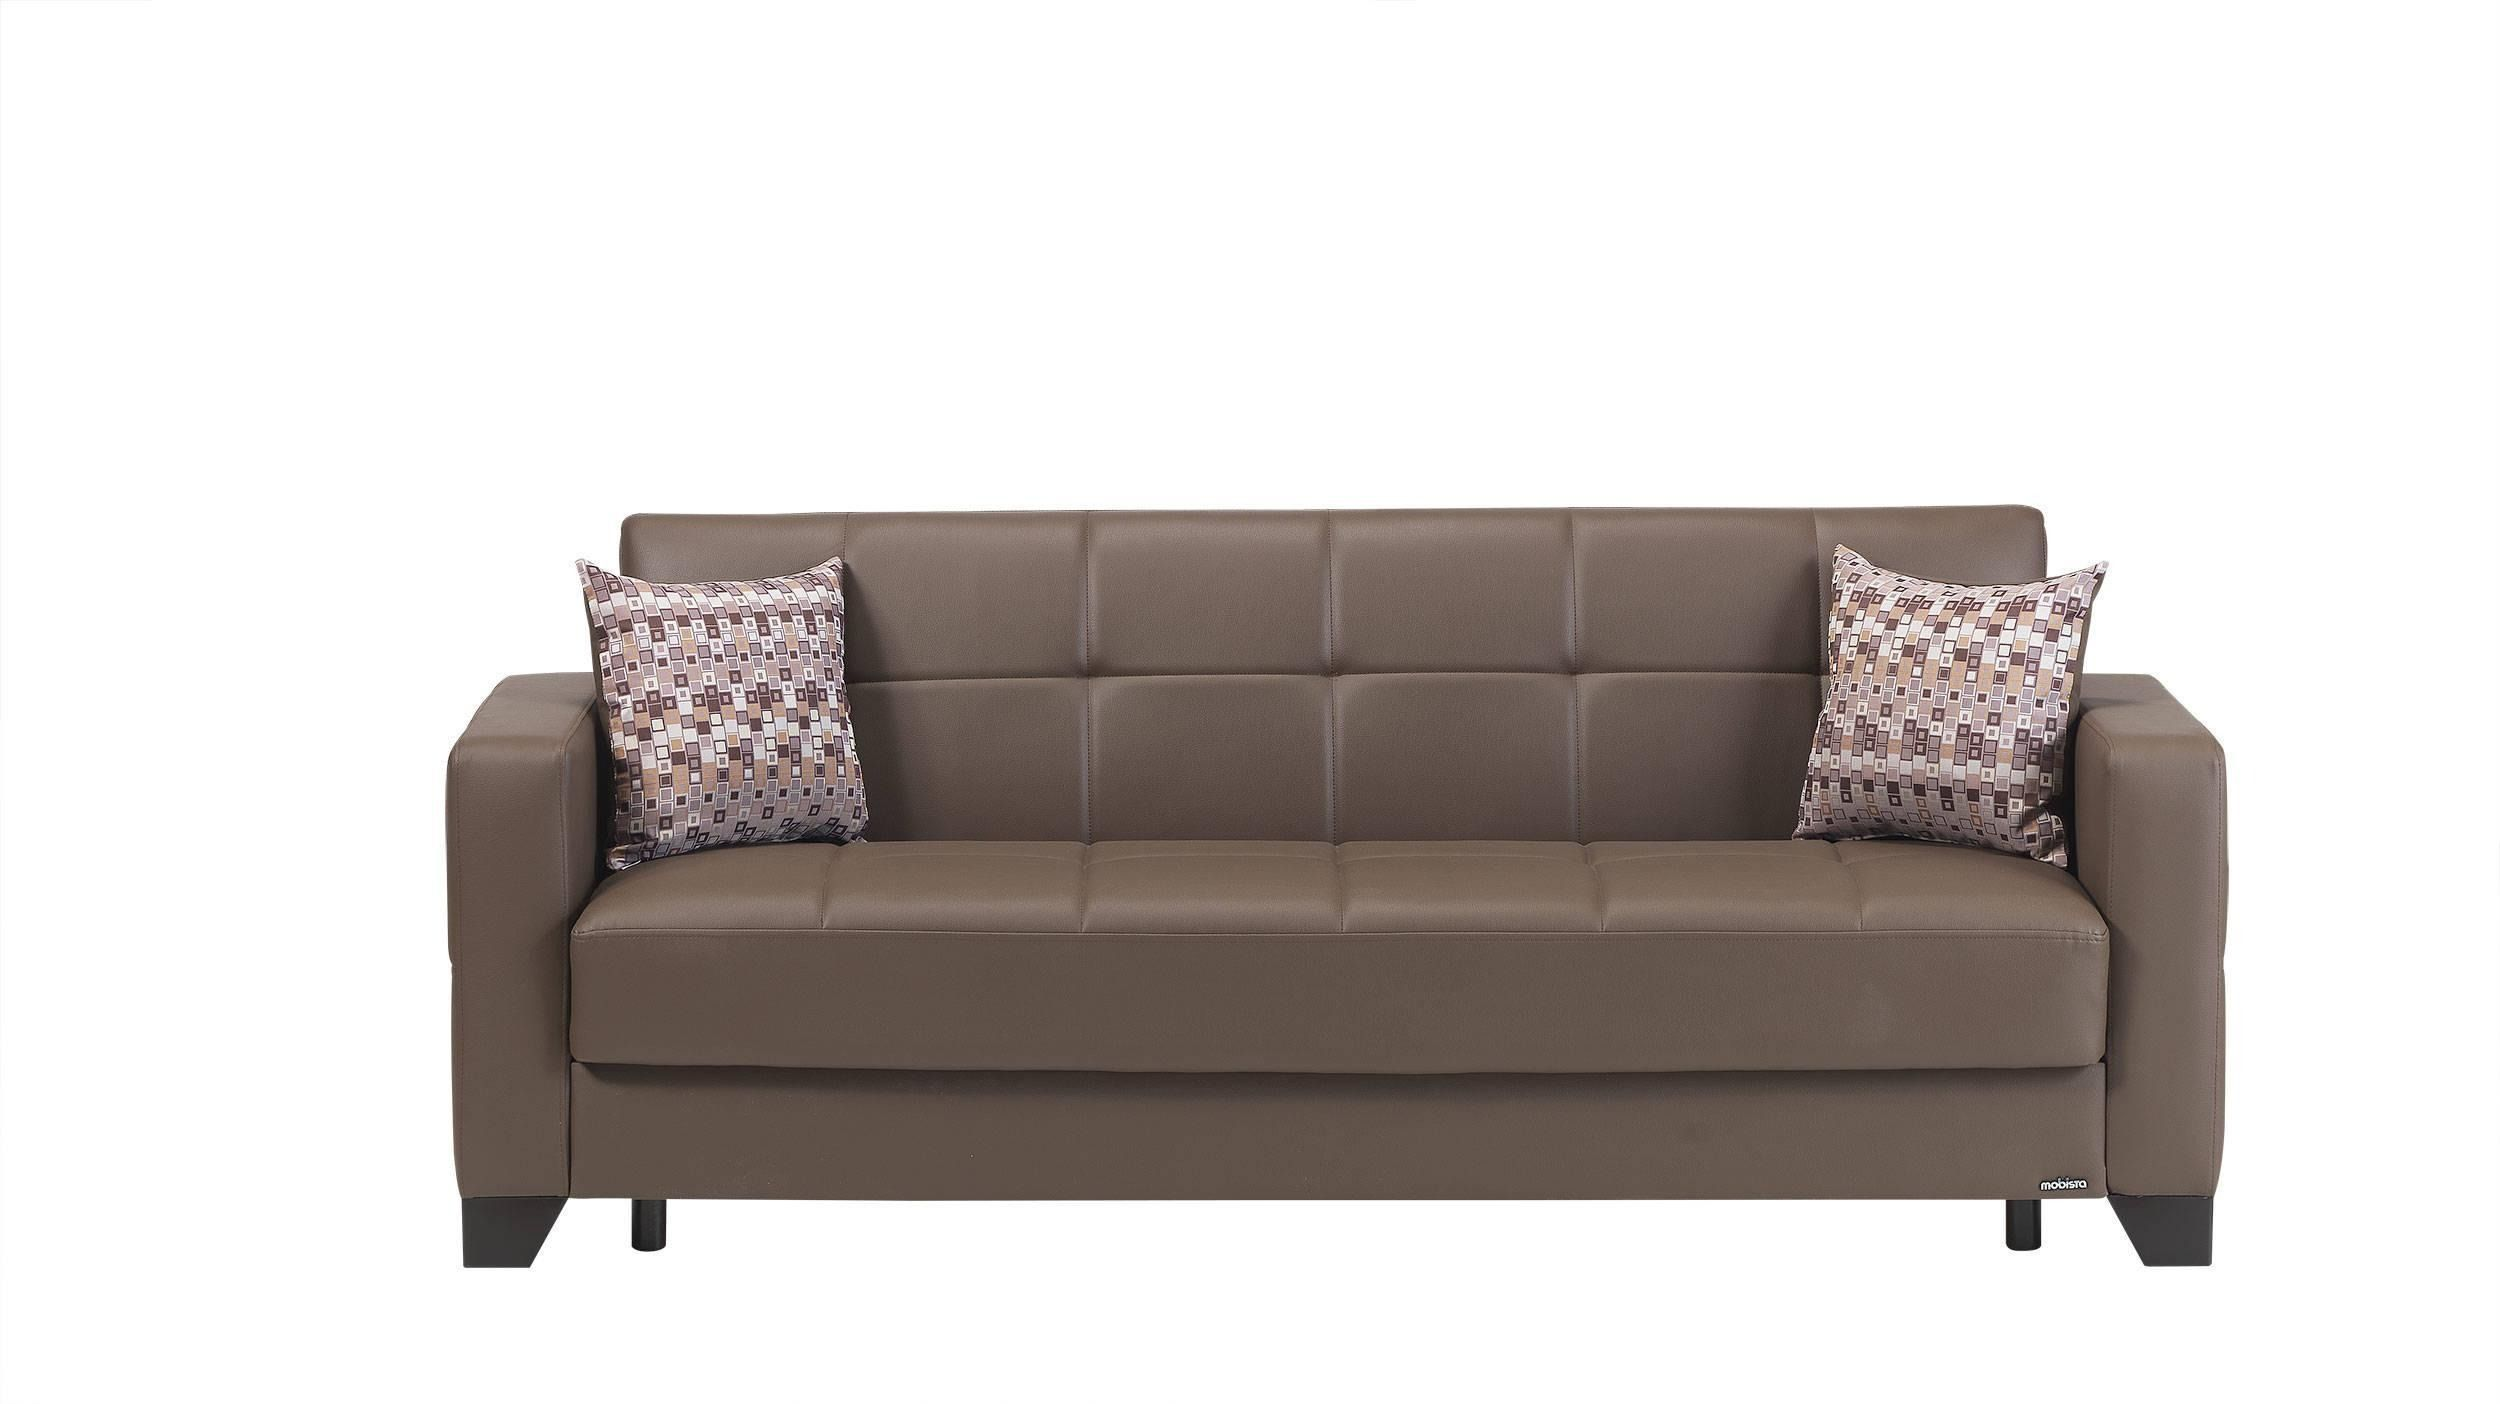 27 Schöne Plaid Sofa Und Loveseat Sofa Sofa Bed With